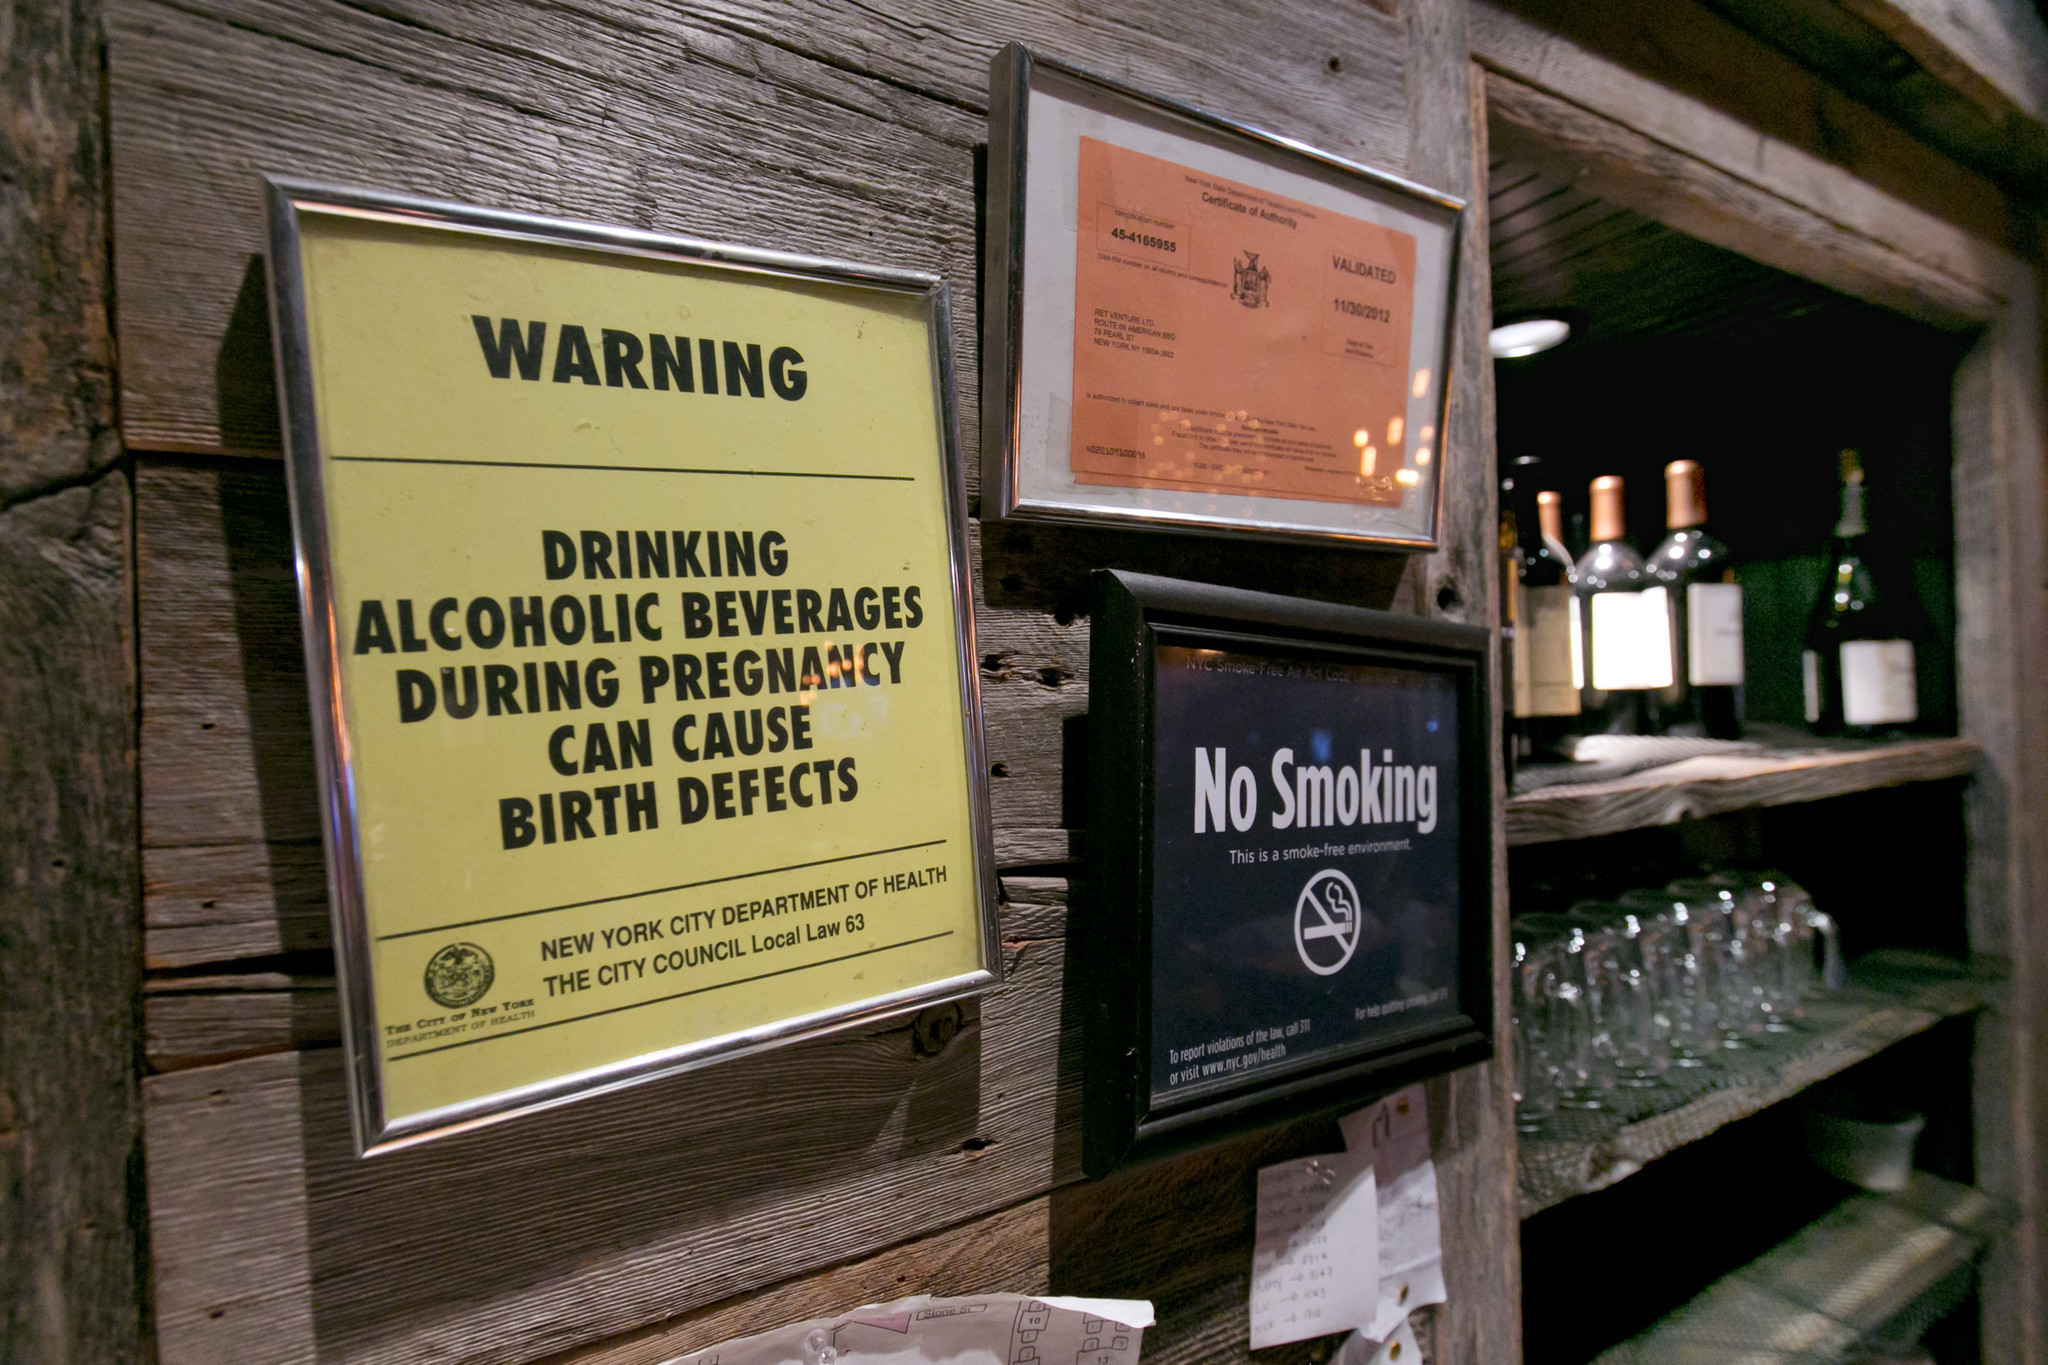 Signs in a New York bar warn of the dangers of drinking while pregnant.